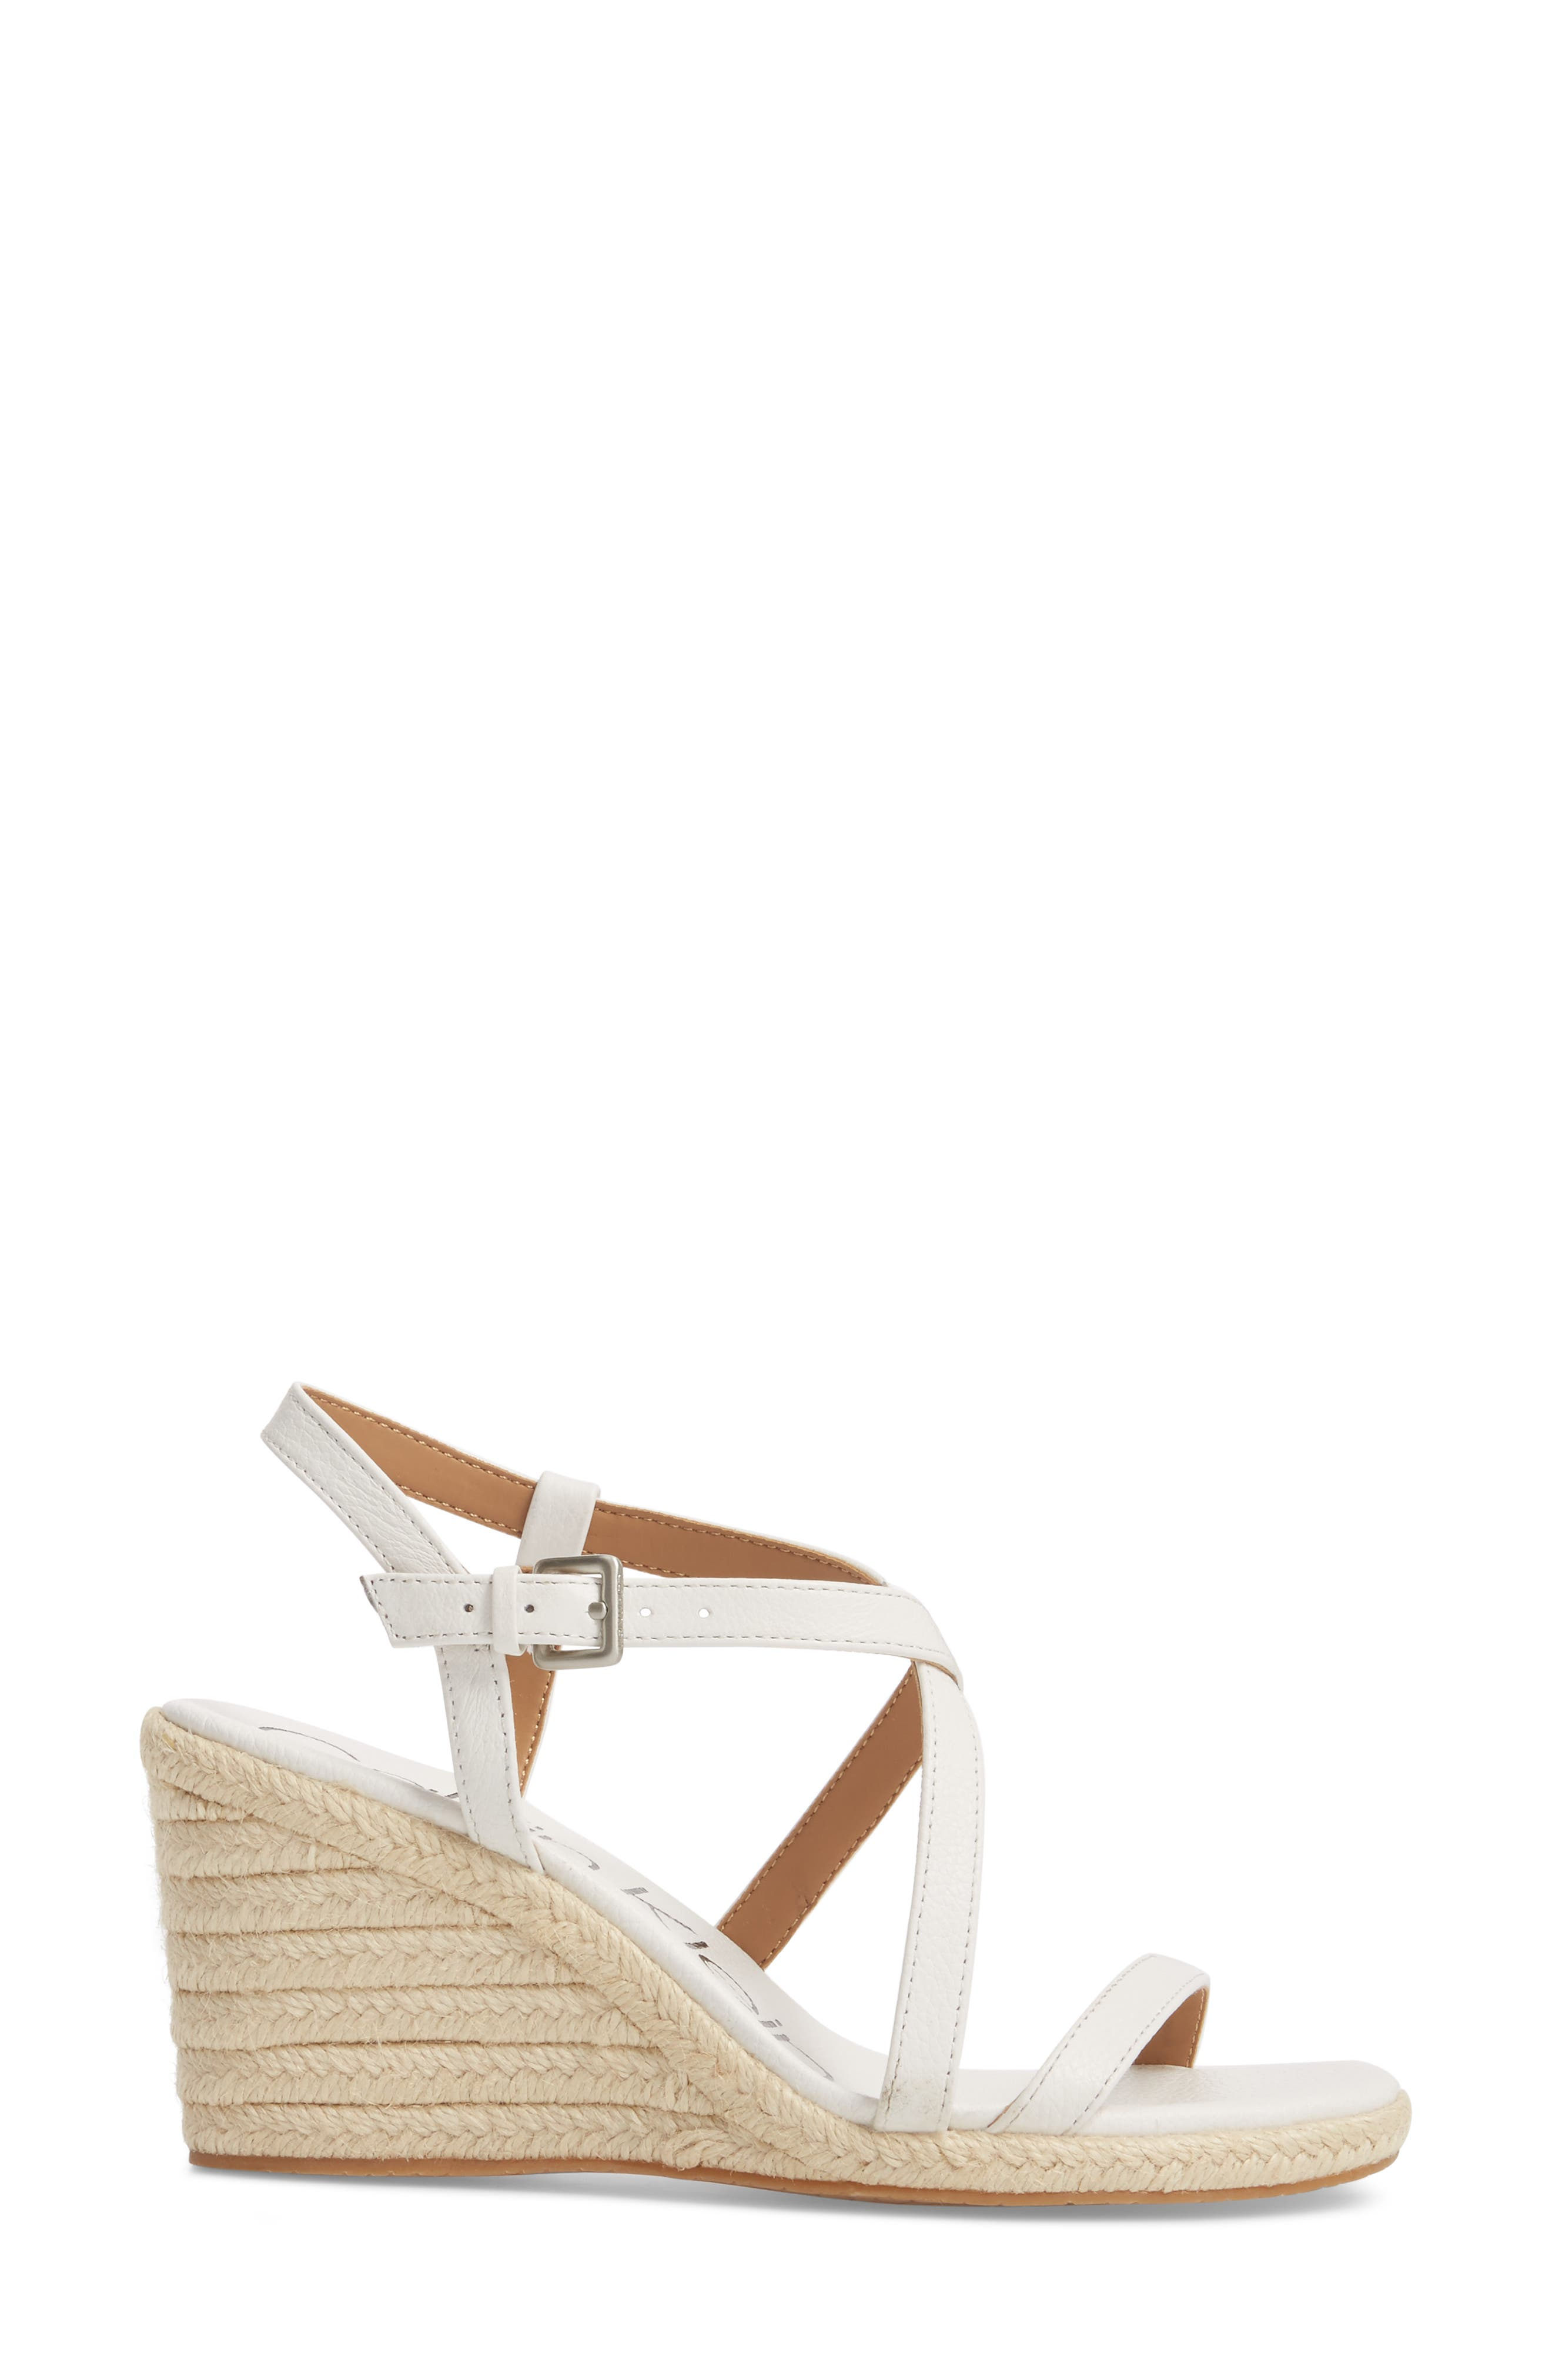 Bellemine Espadrille Wedge Sandal,                             Alternate thumbnail 3, color,                             PLATINUM WHITE PEBBLE LEATHER